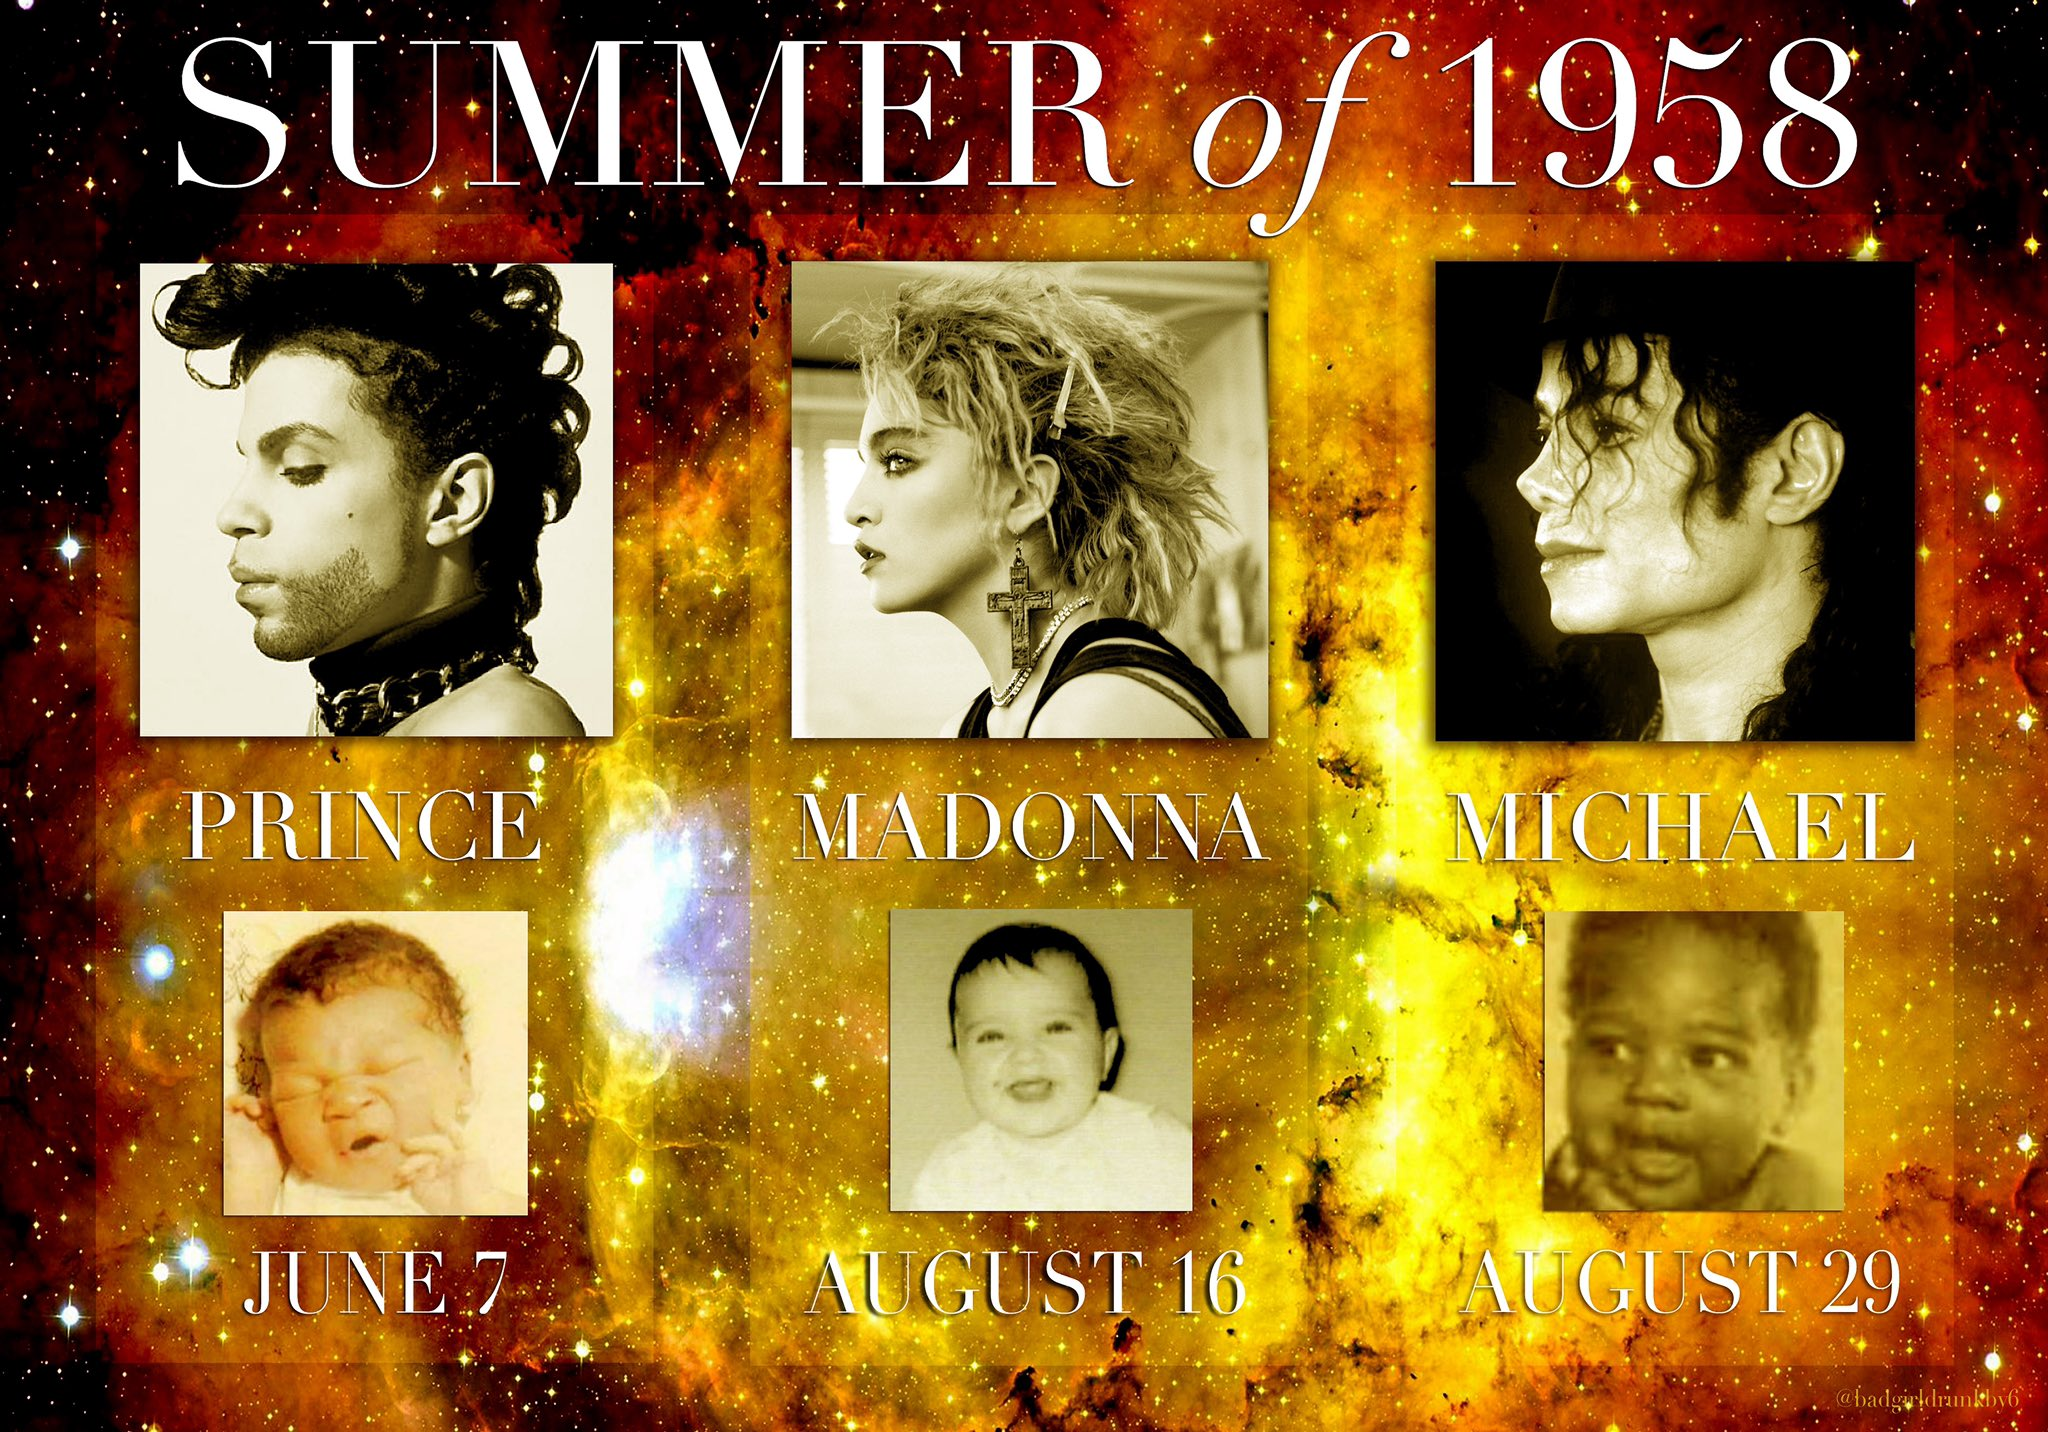 Happy Birthday The summer of 1958 sure was magical!